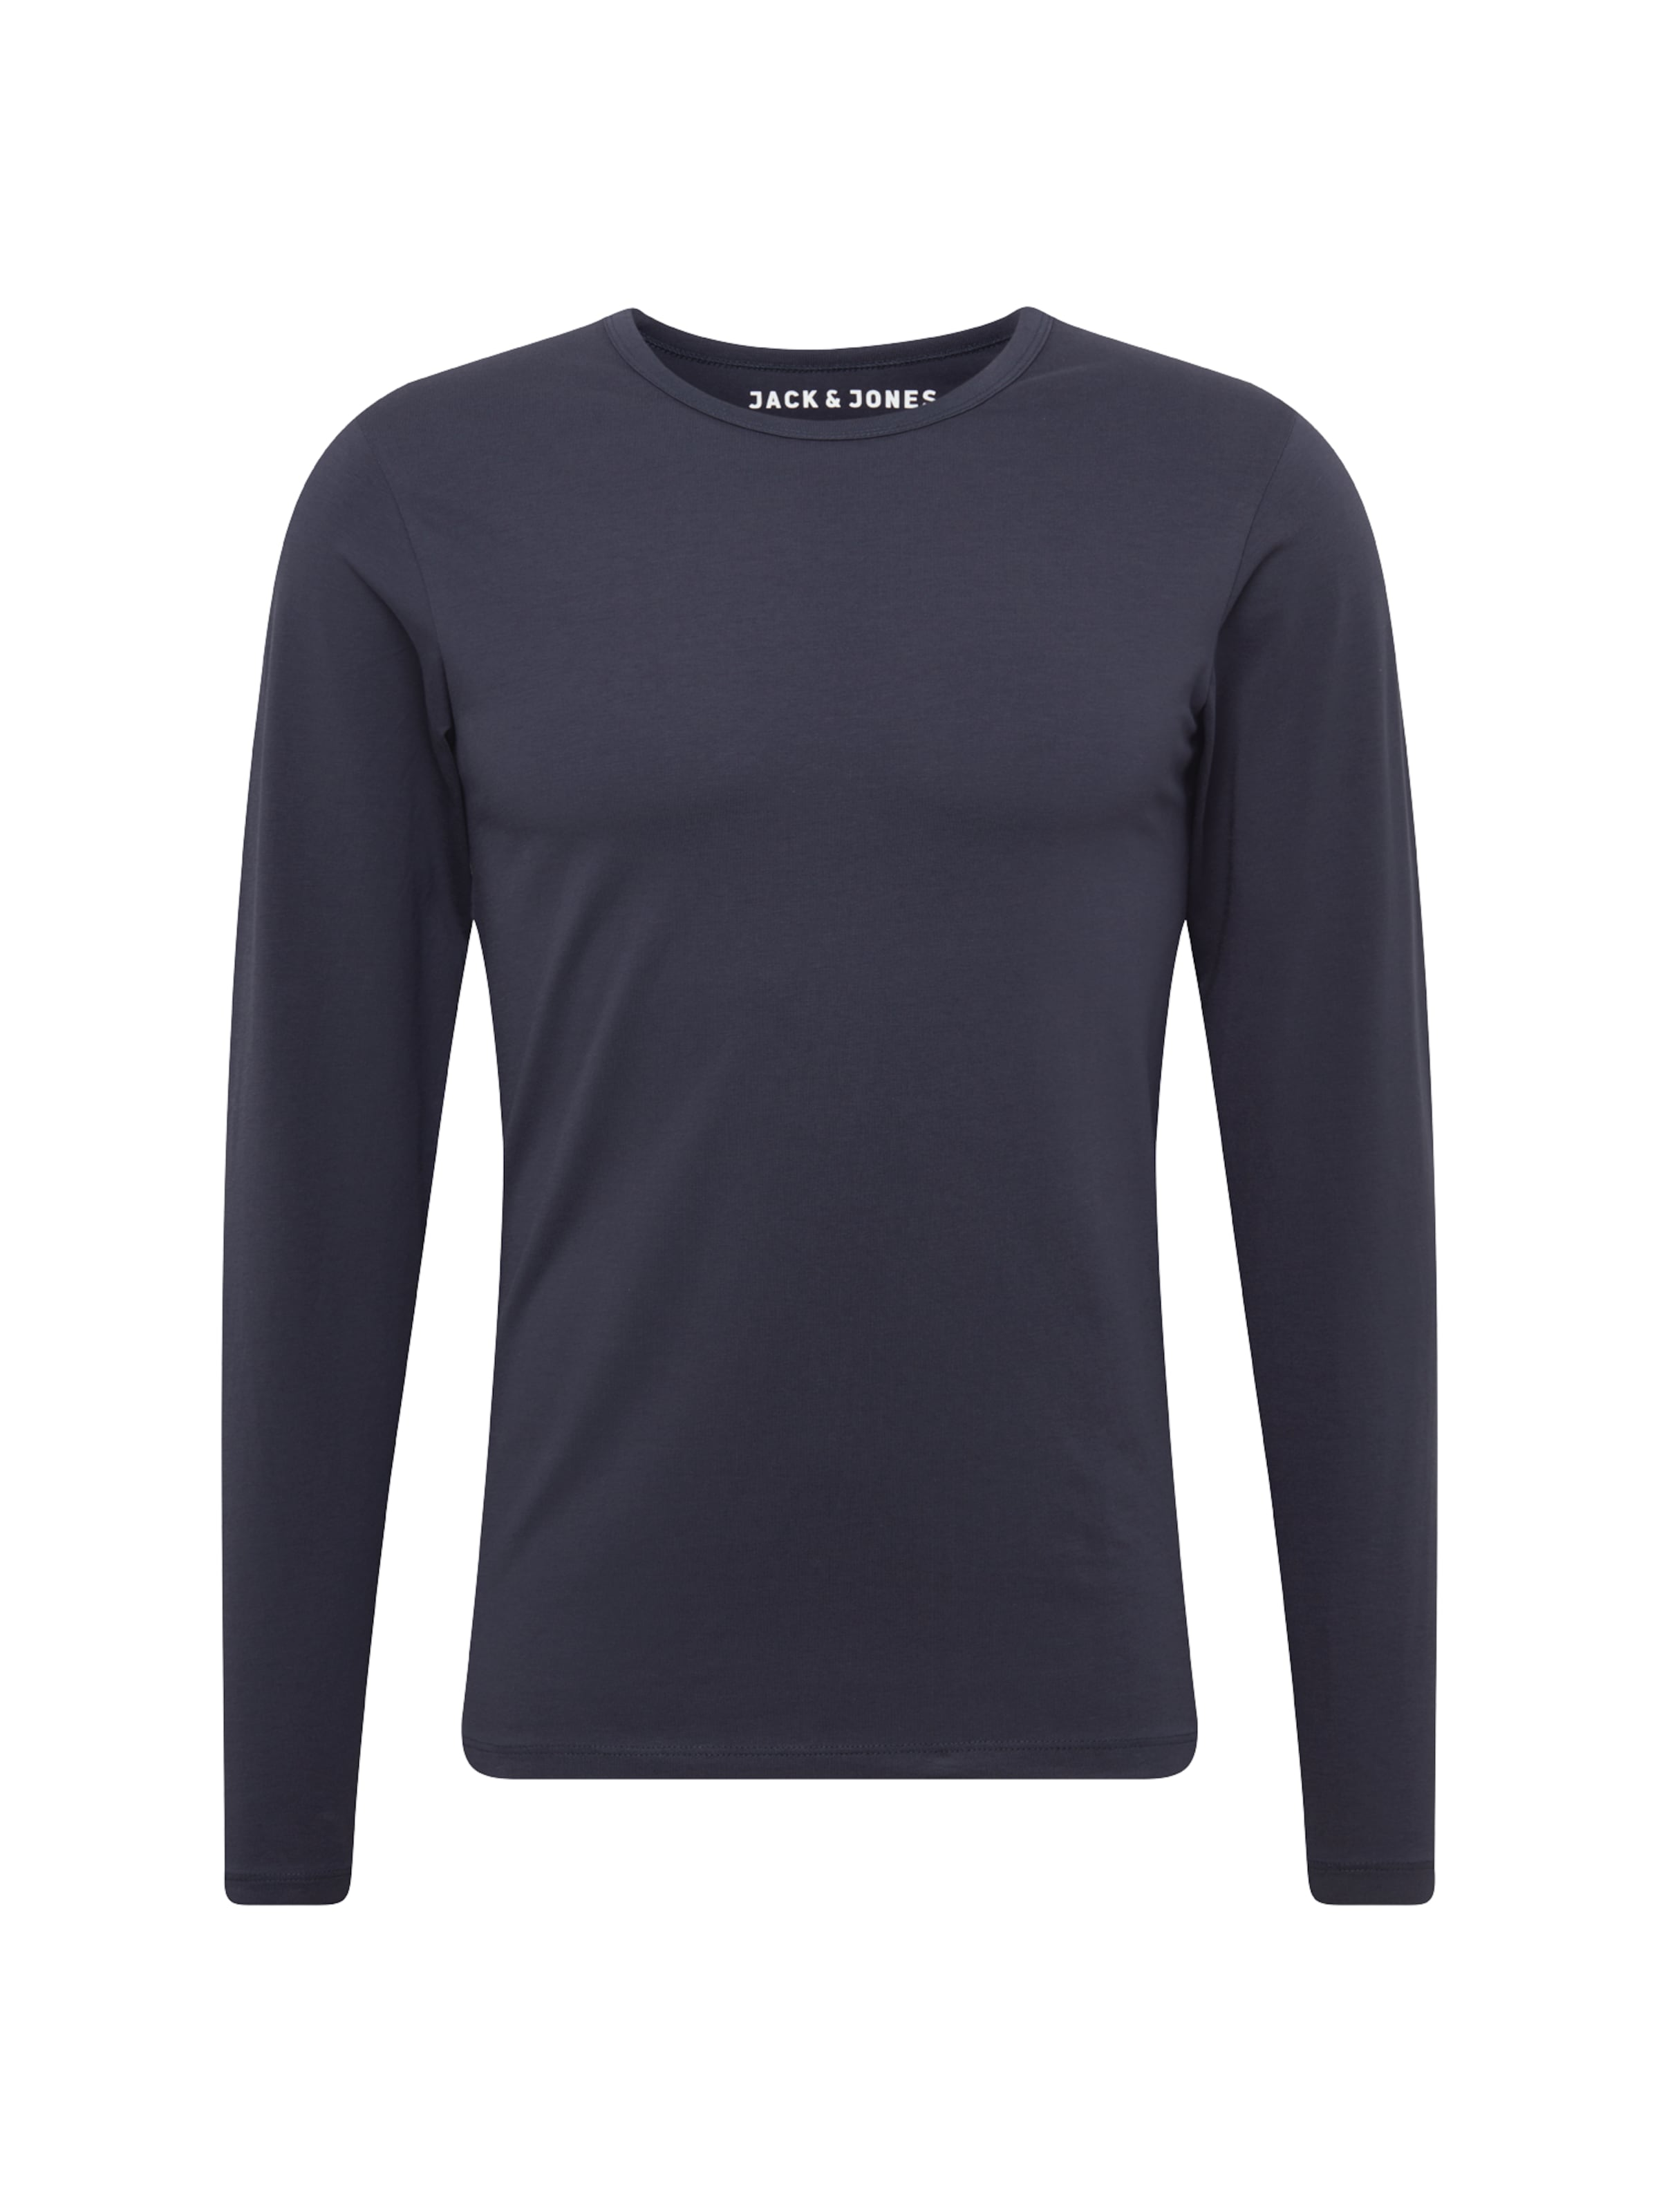 Jackamp; Marine En Bleu Jones shirt T KJ3T1Flc